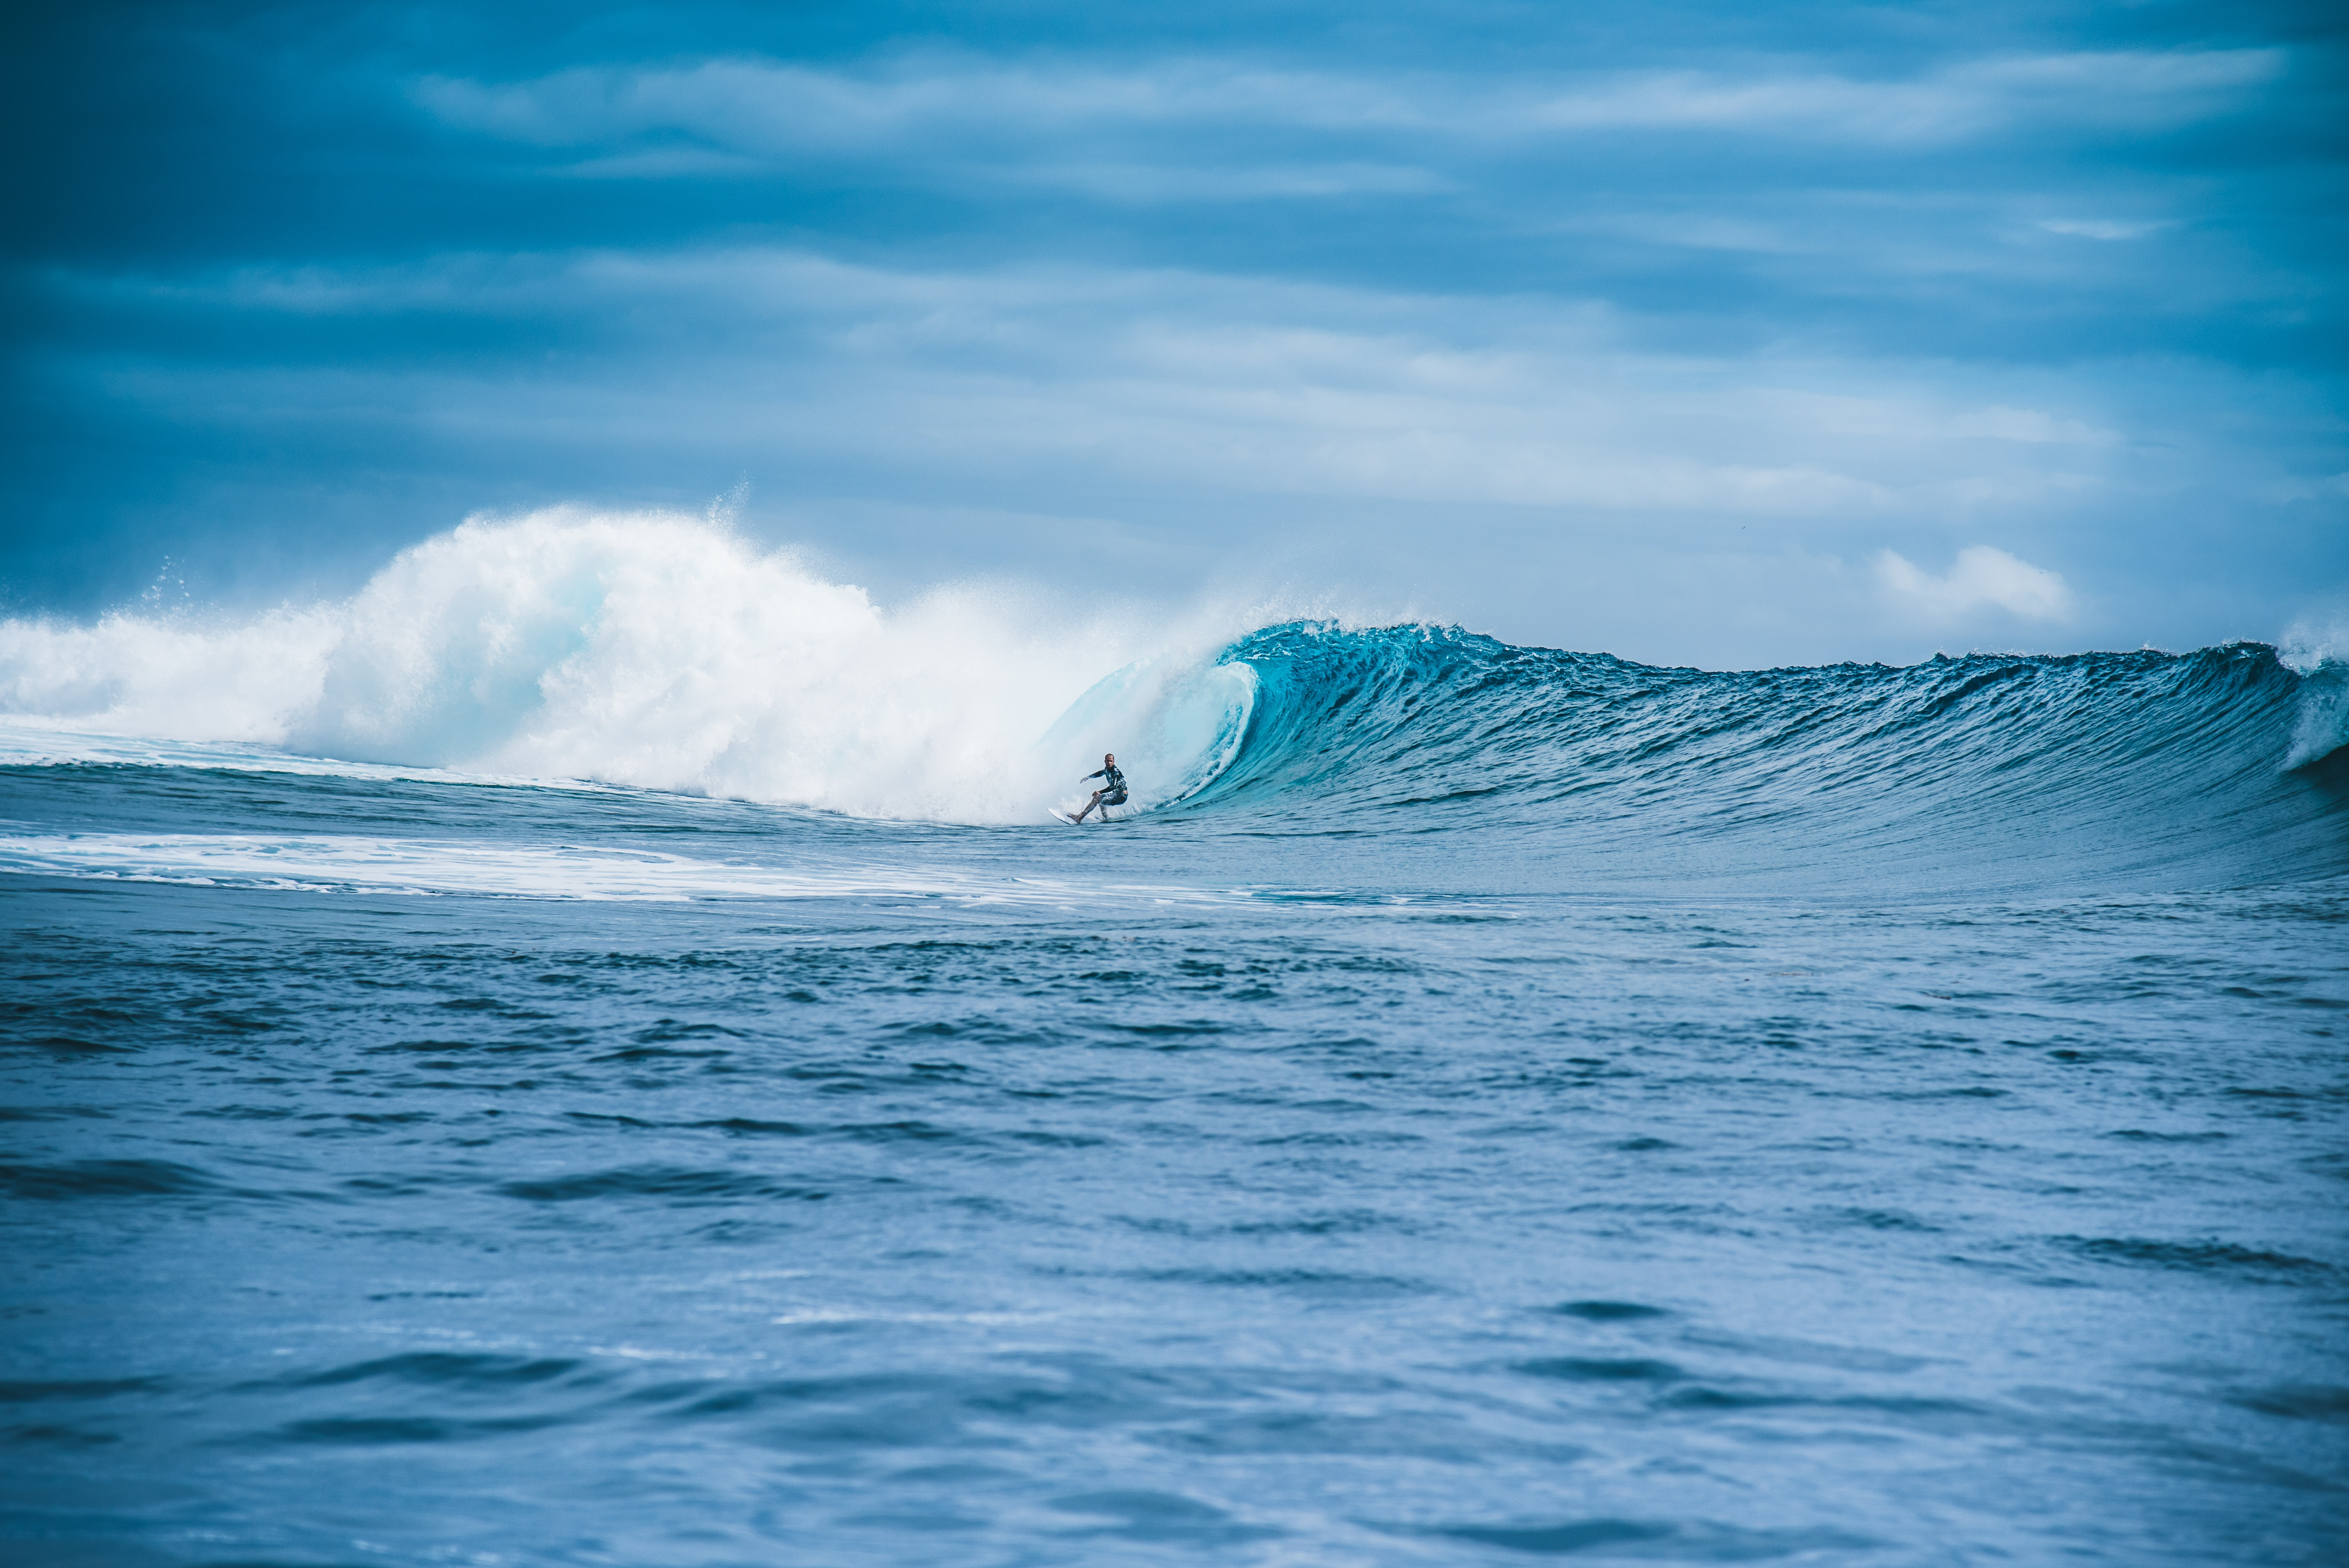 56750 download wallpaper Sports, Wave, Surfer, Serfing, Ocean, Water screensavers and pictures for free